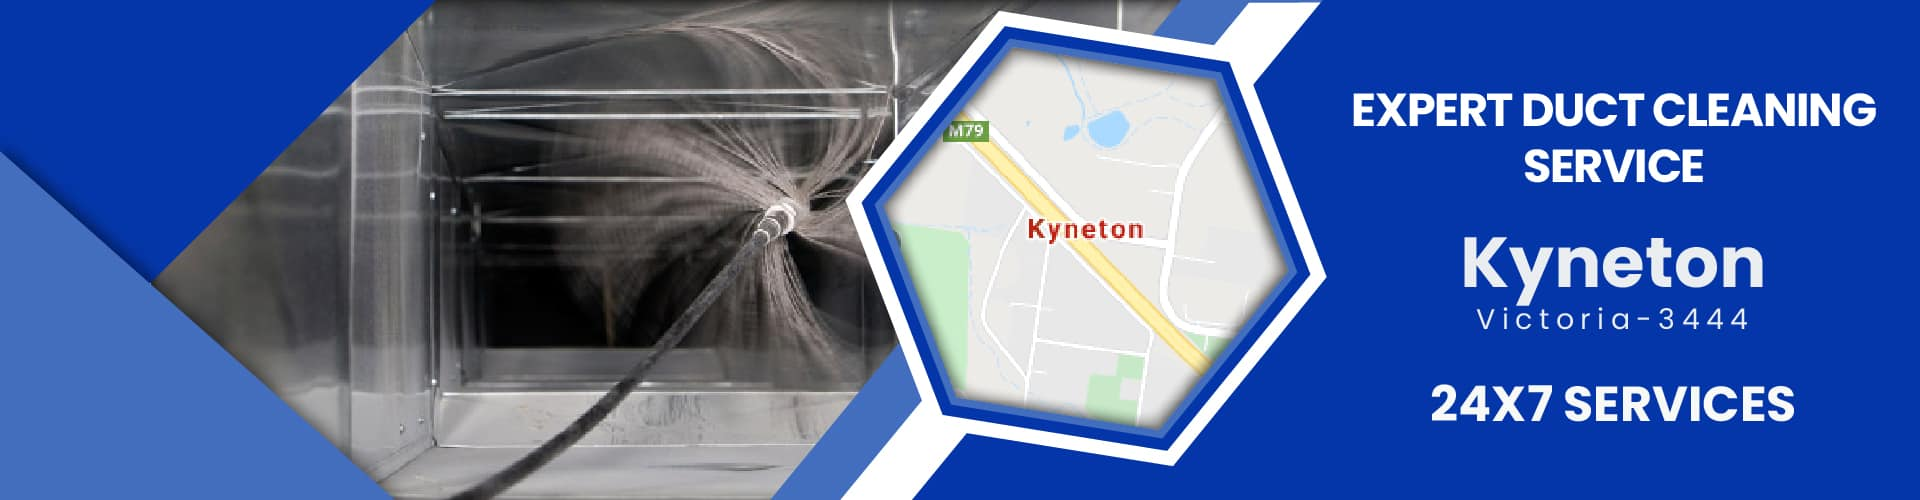 Duct Cleaning Kyneton